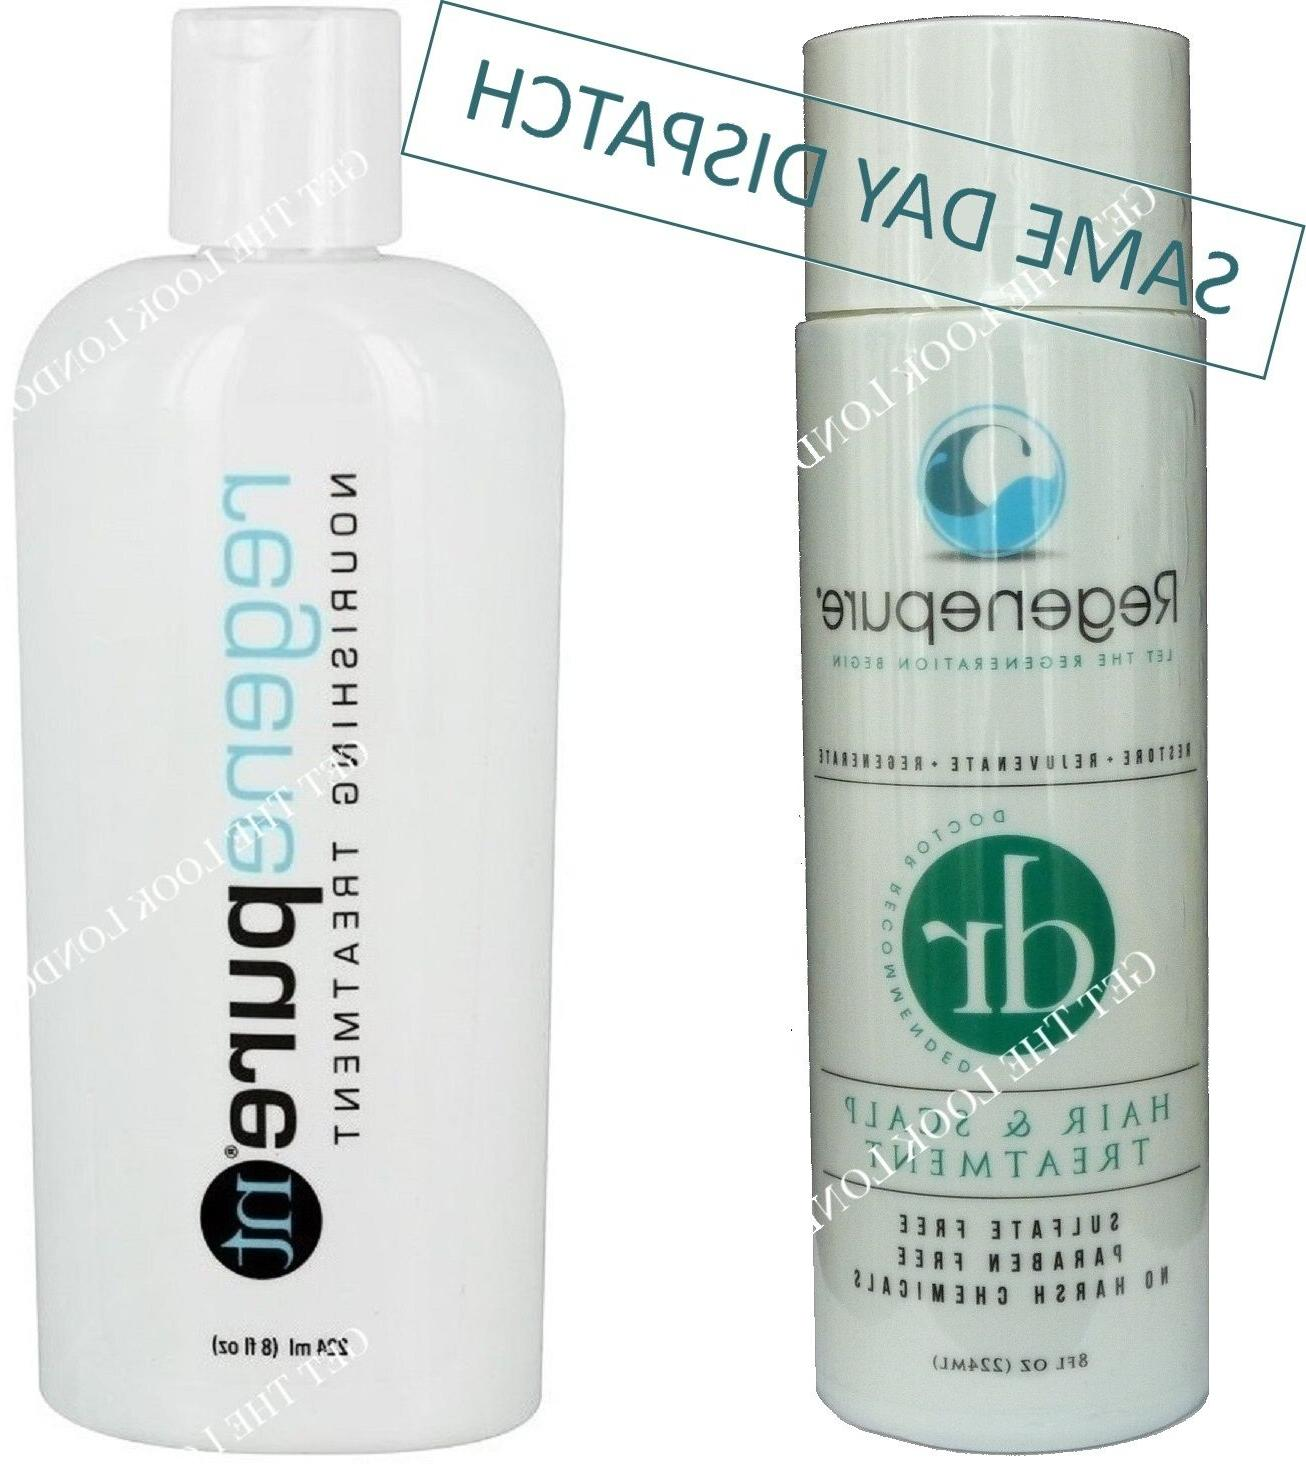 REGENEPURE DR & COMBO HAIR LOSS REGROWTH SHAMPOO & KIT